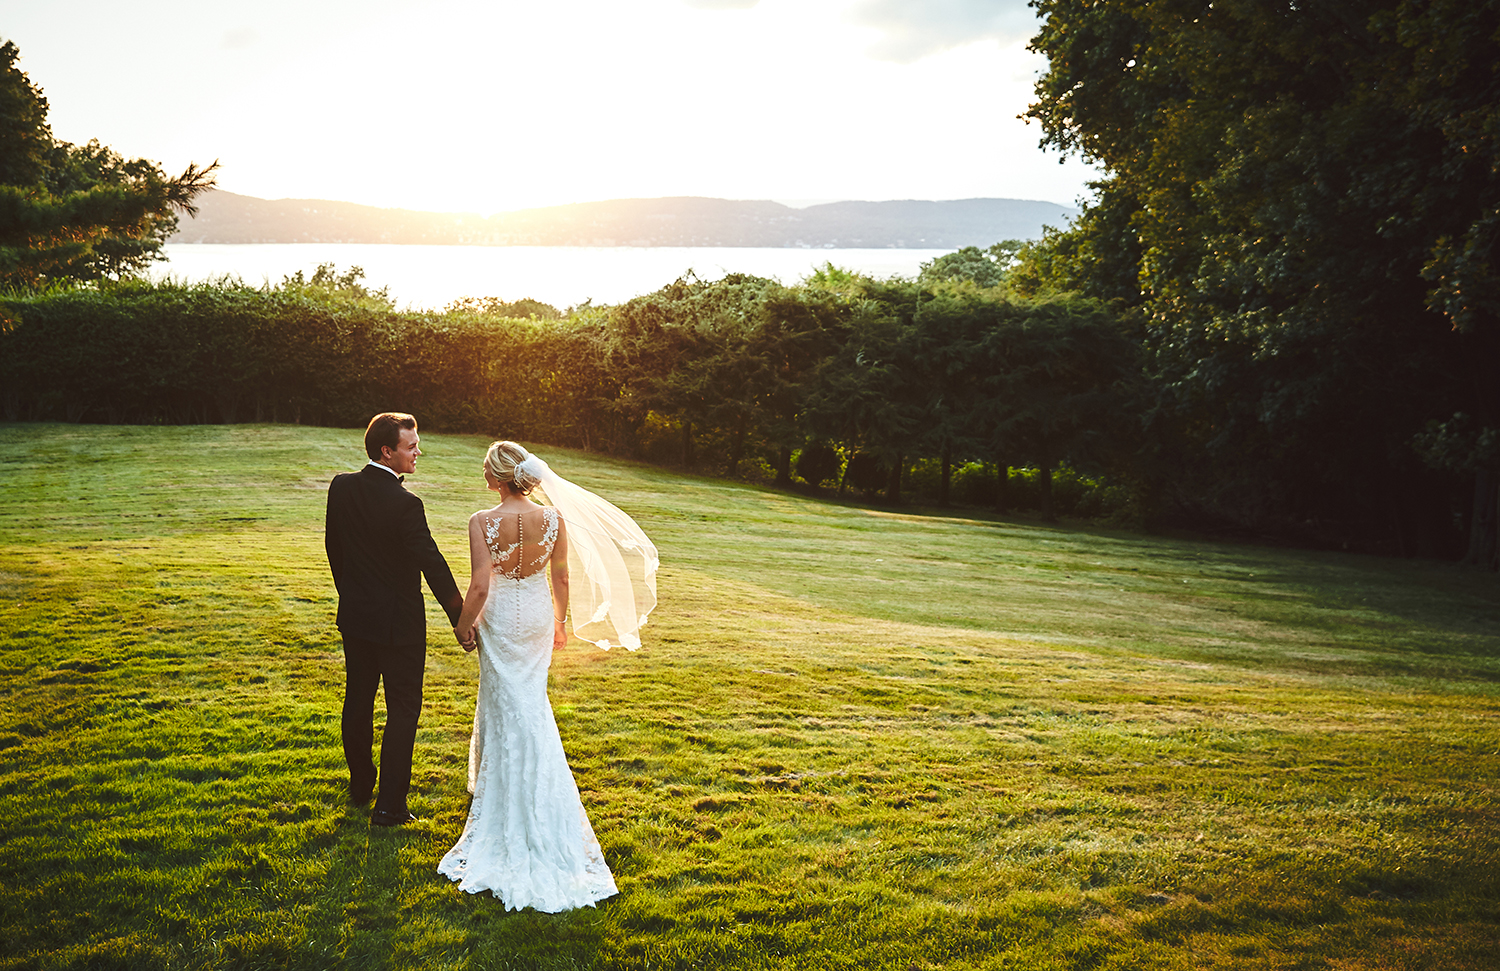 170804_TappanHillMansionWeddingPhotography_NYWeddingPhotographerBy_BriJohnsonWeddings_0001.jpg